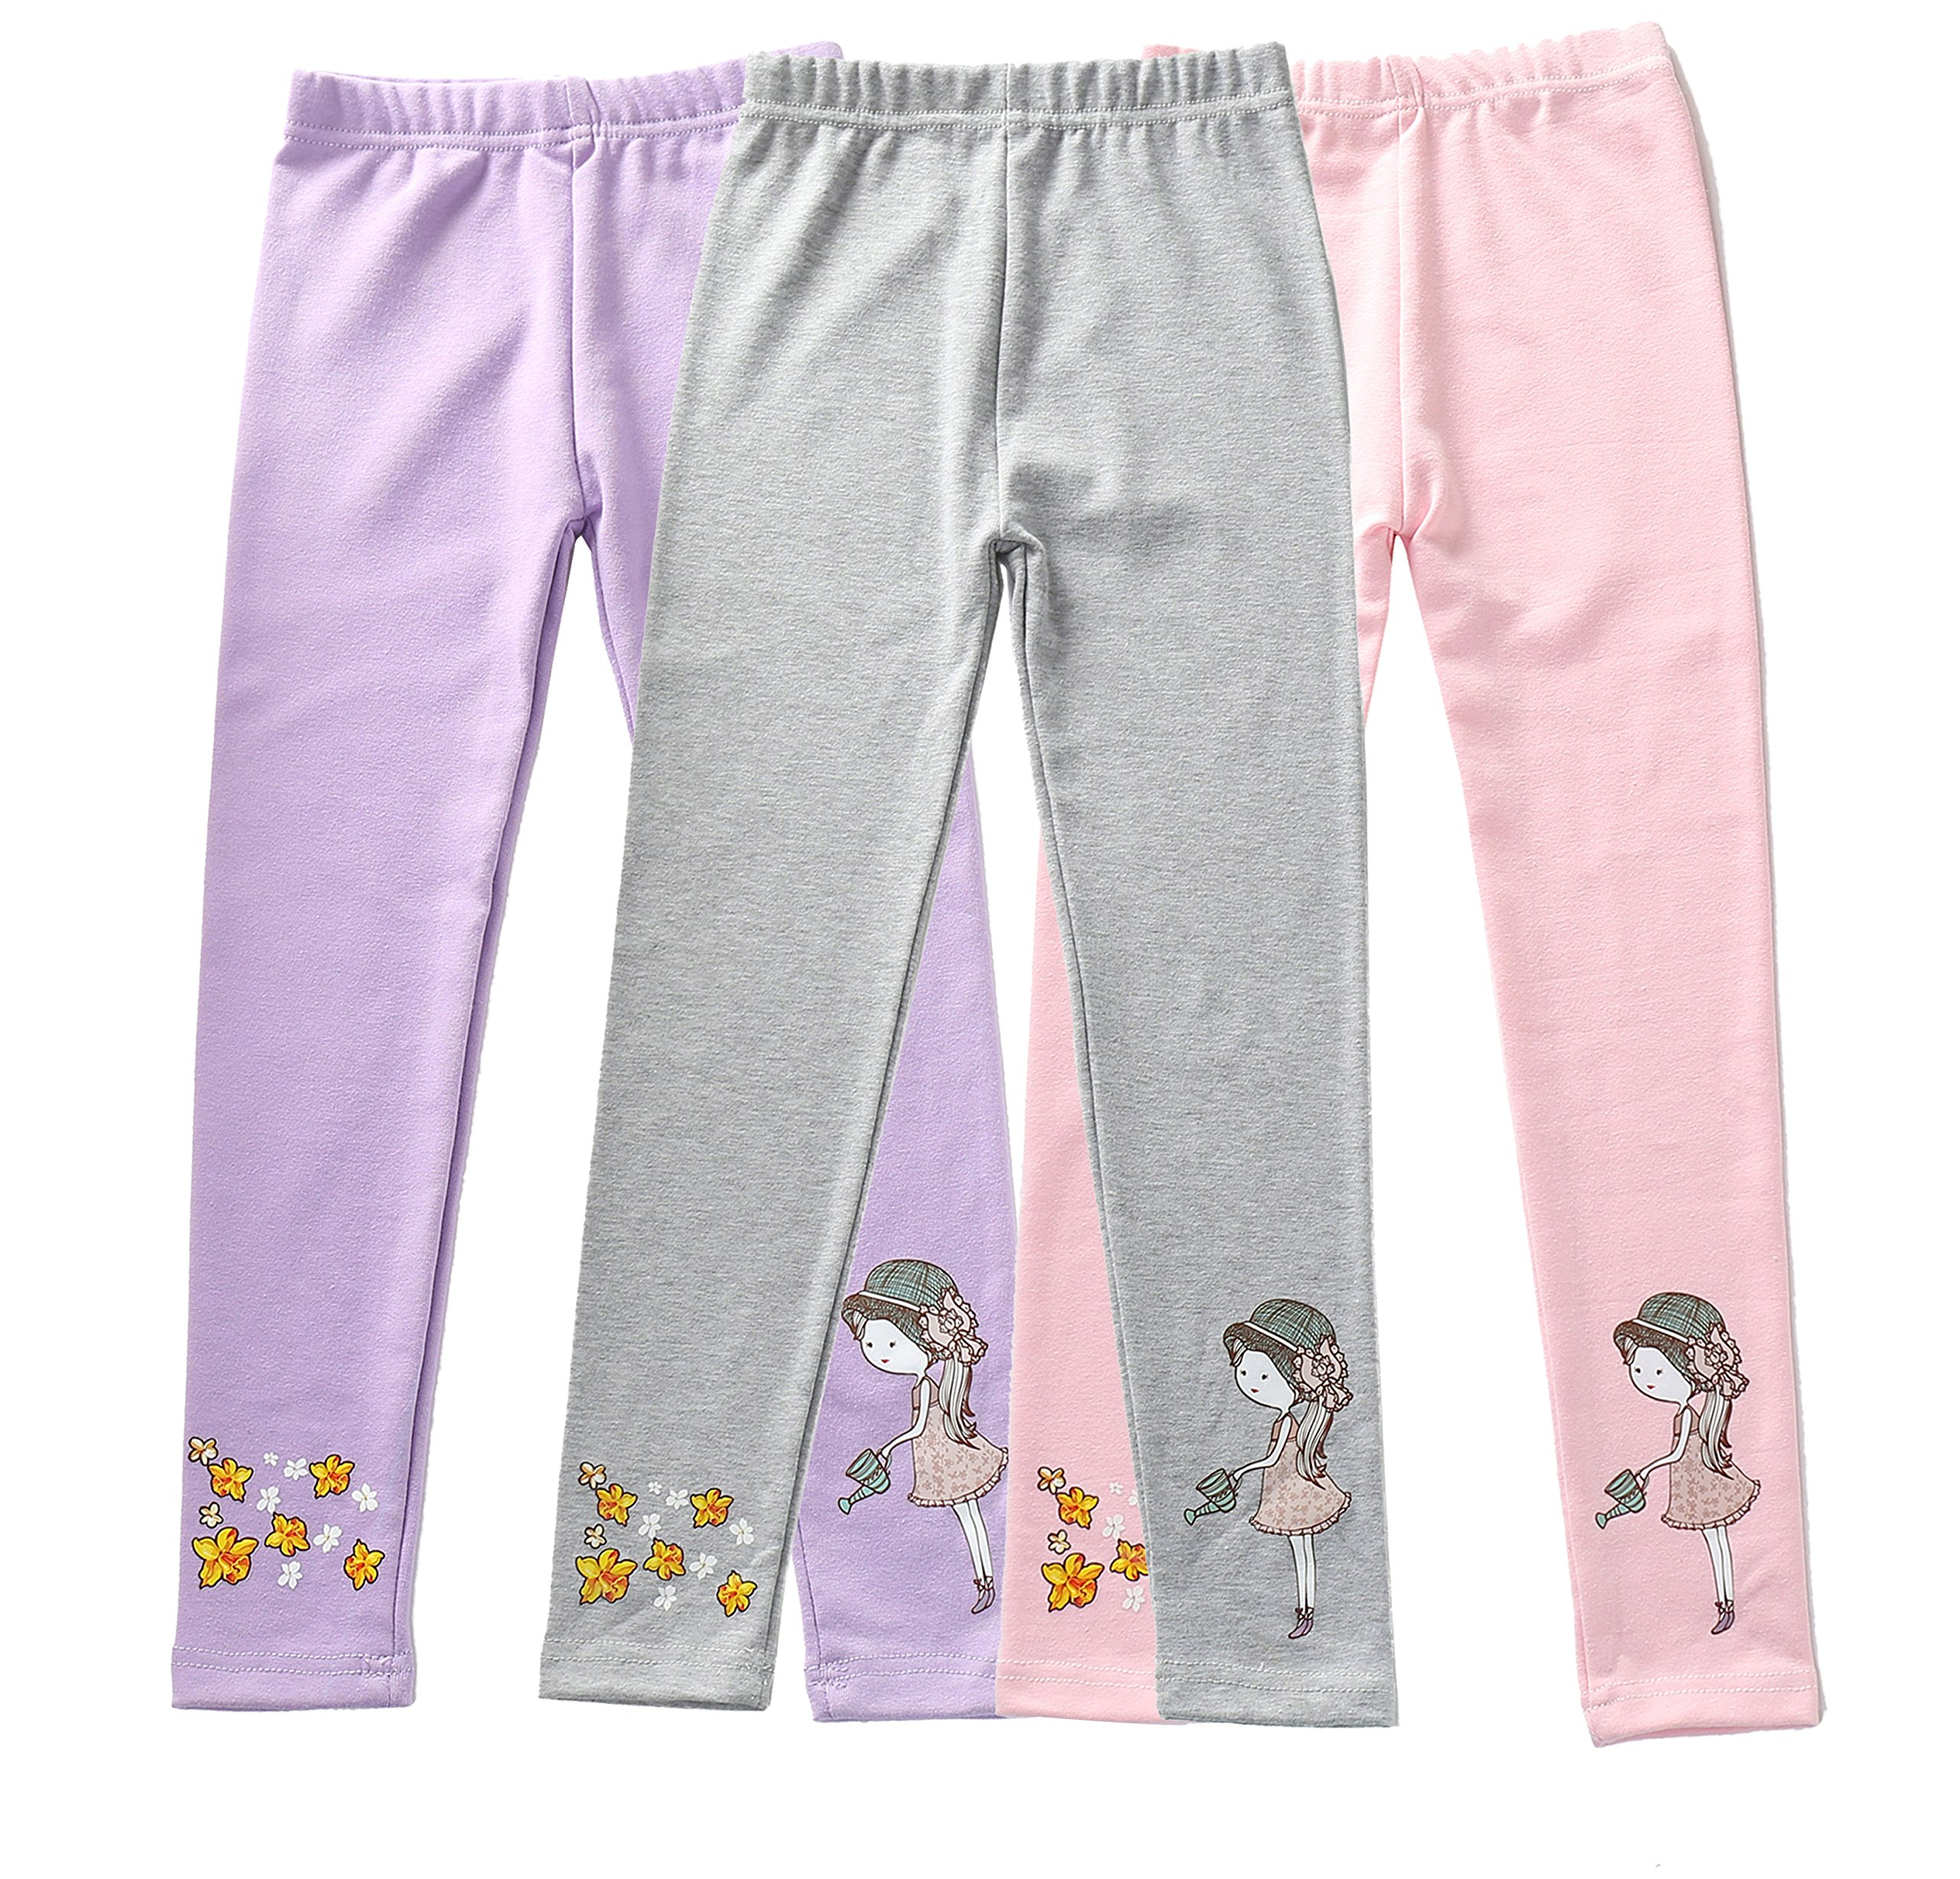 IRELIA Girls Leggings 3 Pack Cotton Novel Size 2-10 for Play 02 XXXS